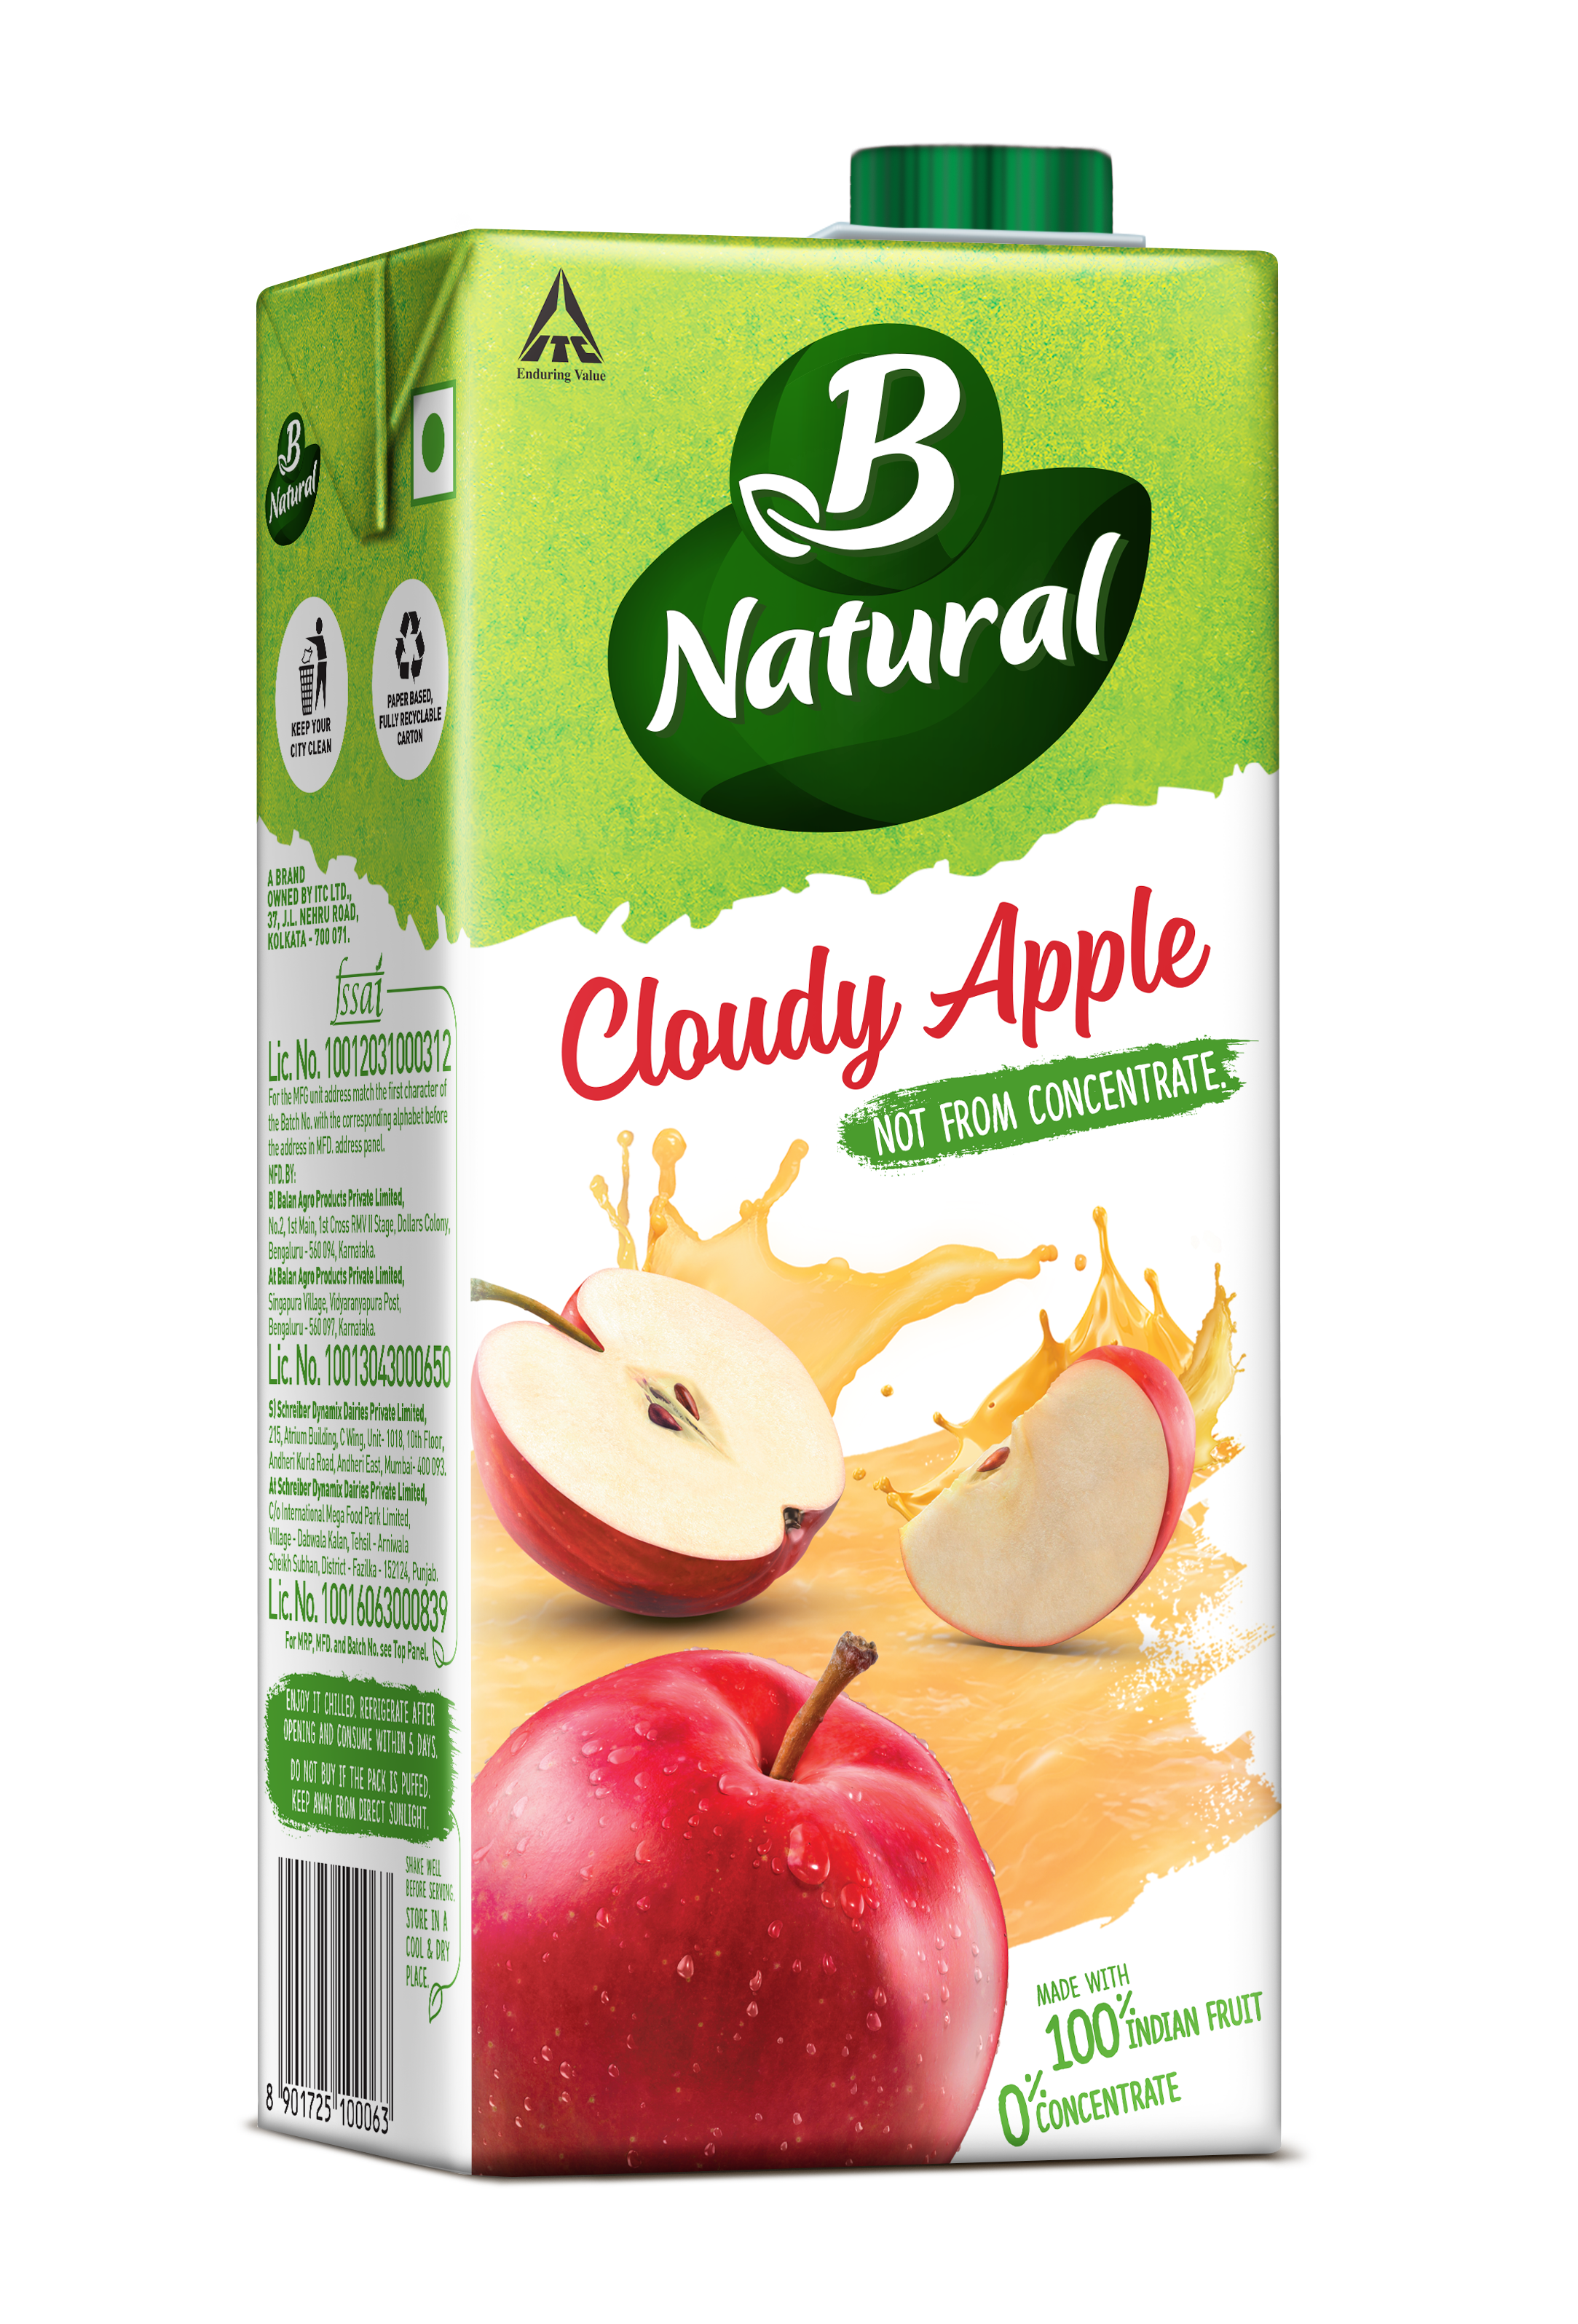 B Natural CLOUDY APPLE Drinks